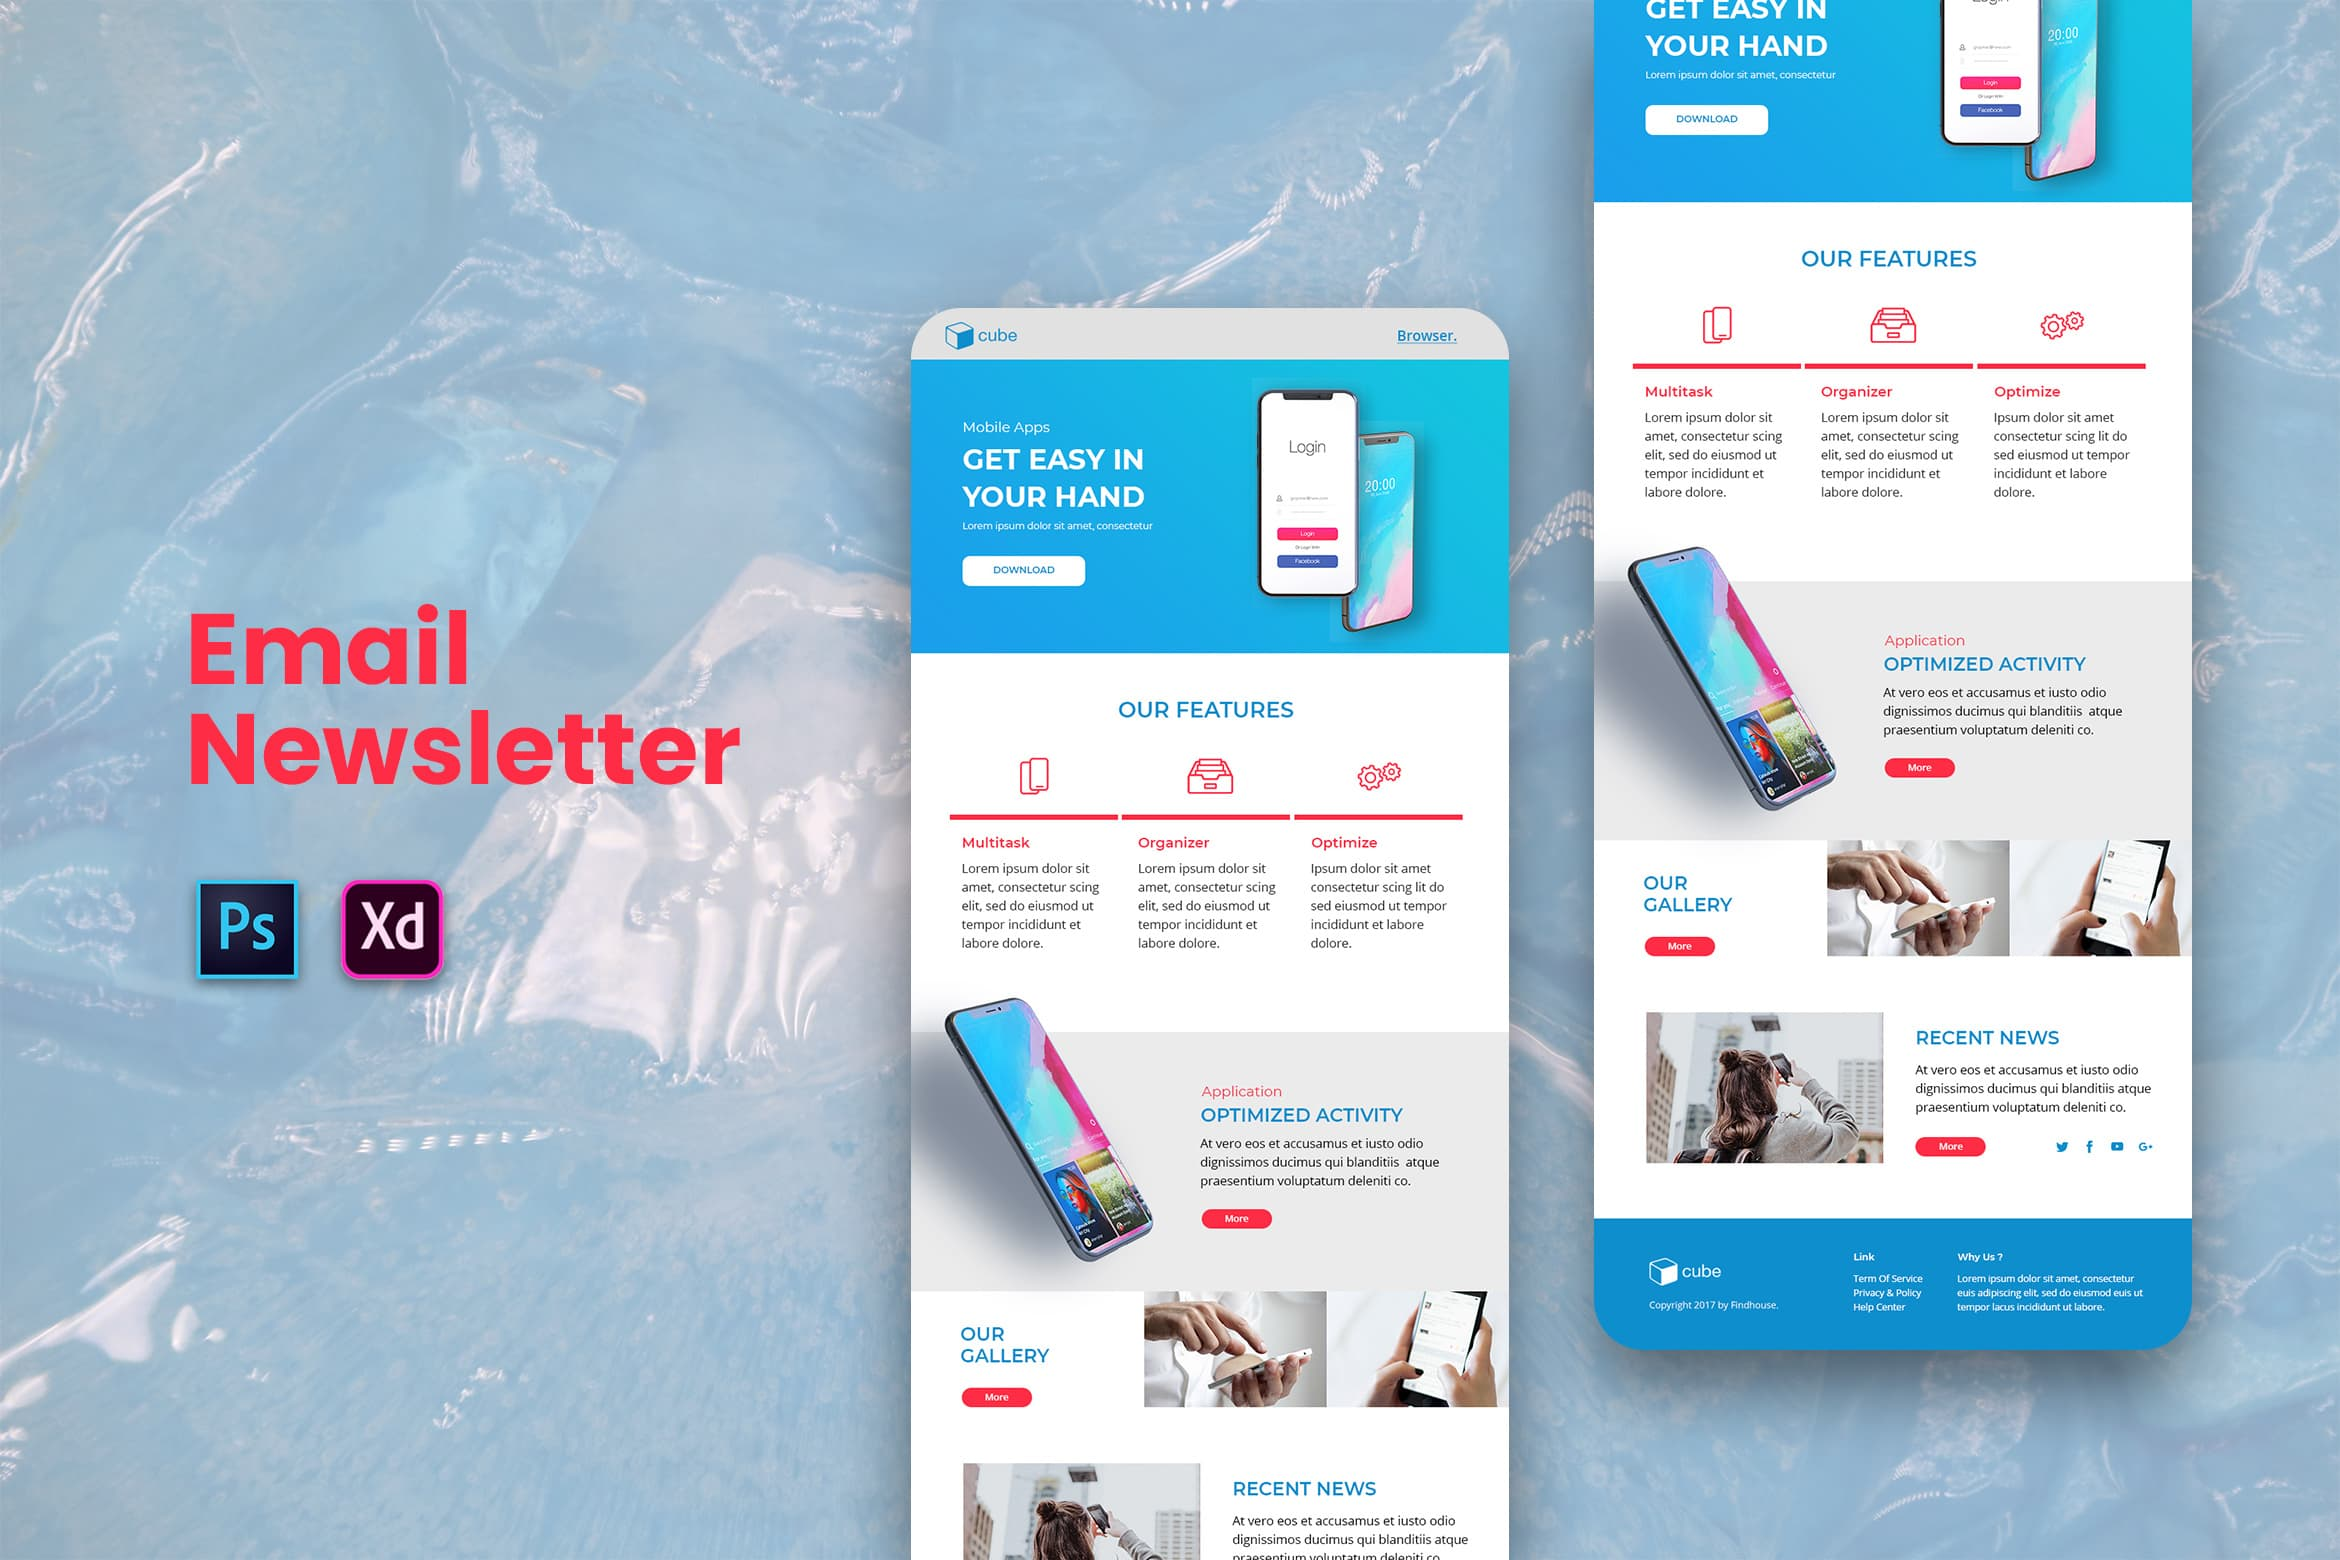 Email Newsletter - Digital Apps Service template